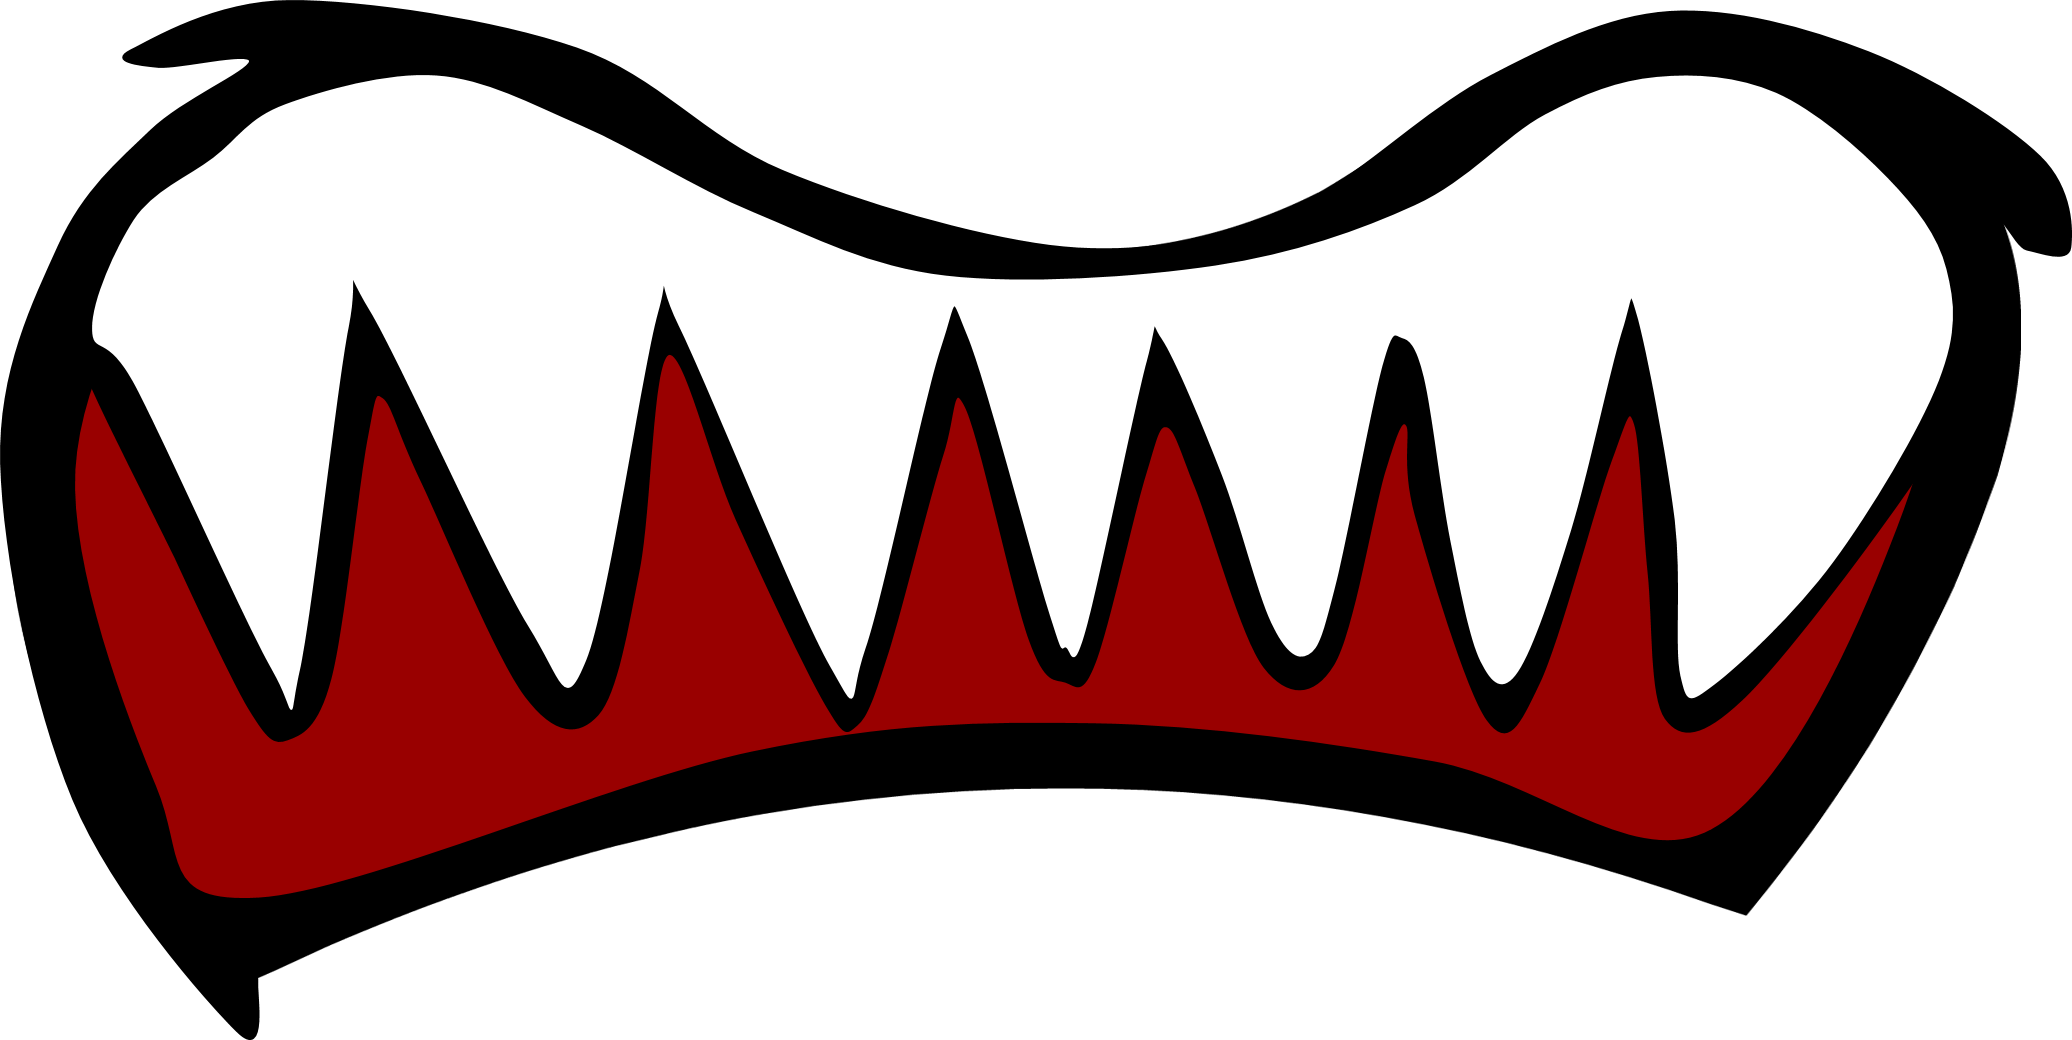 Scary mouth png. Image new scared battle